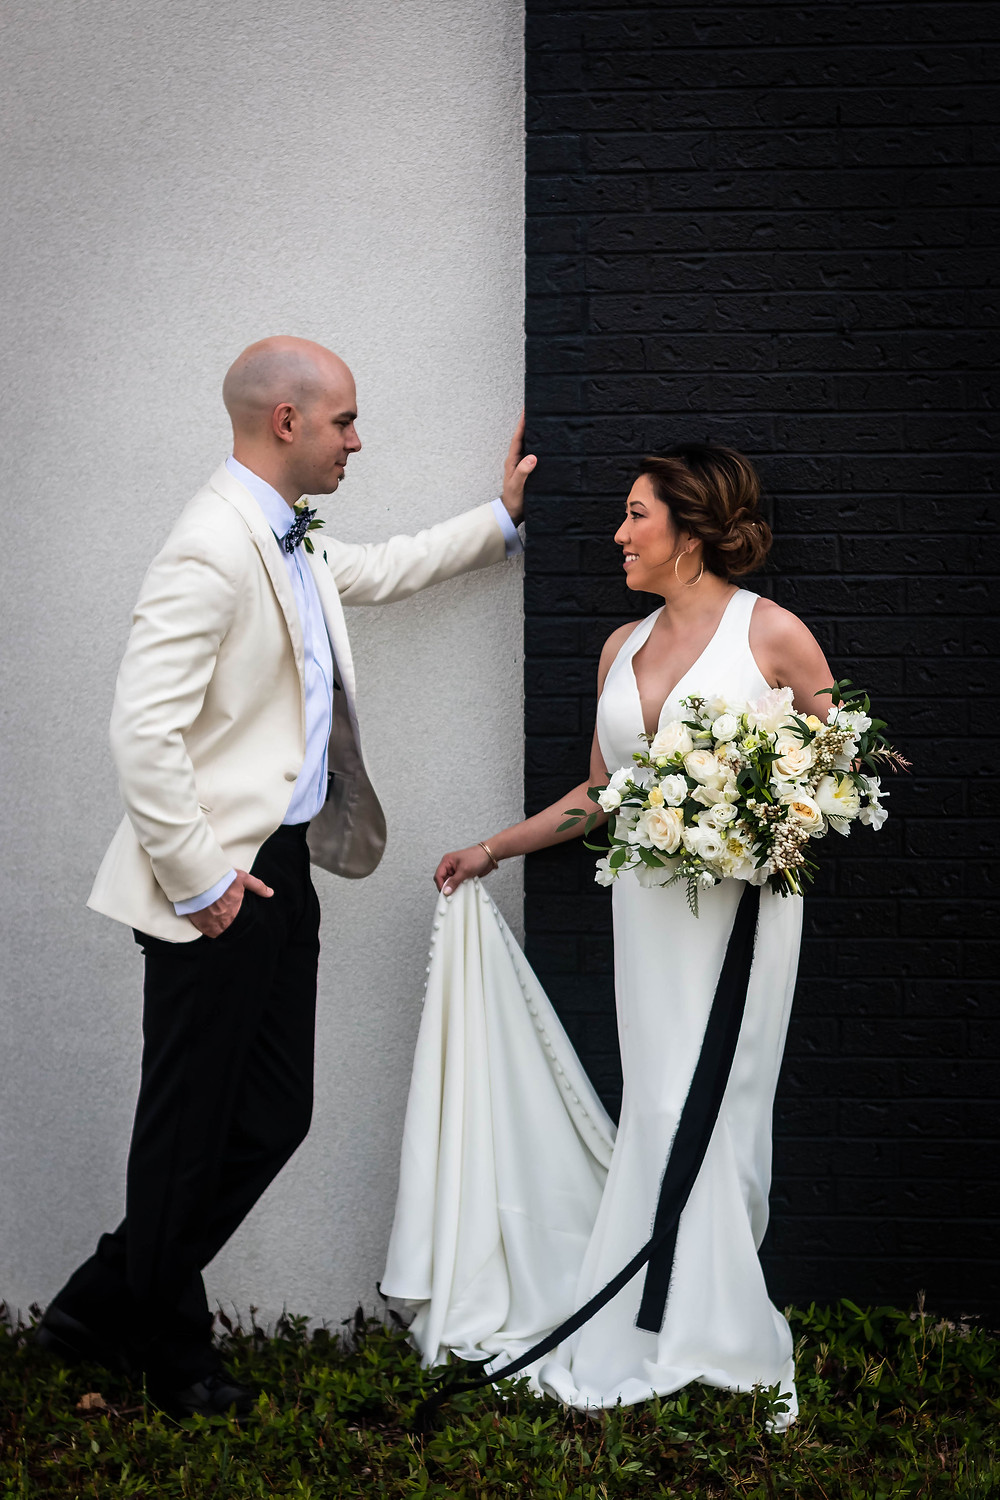 Bride and groom facing each other against black and white wall at Noah Liff Opera Center